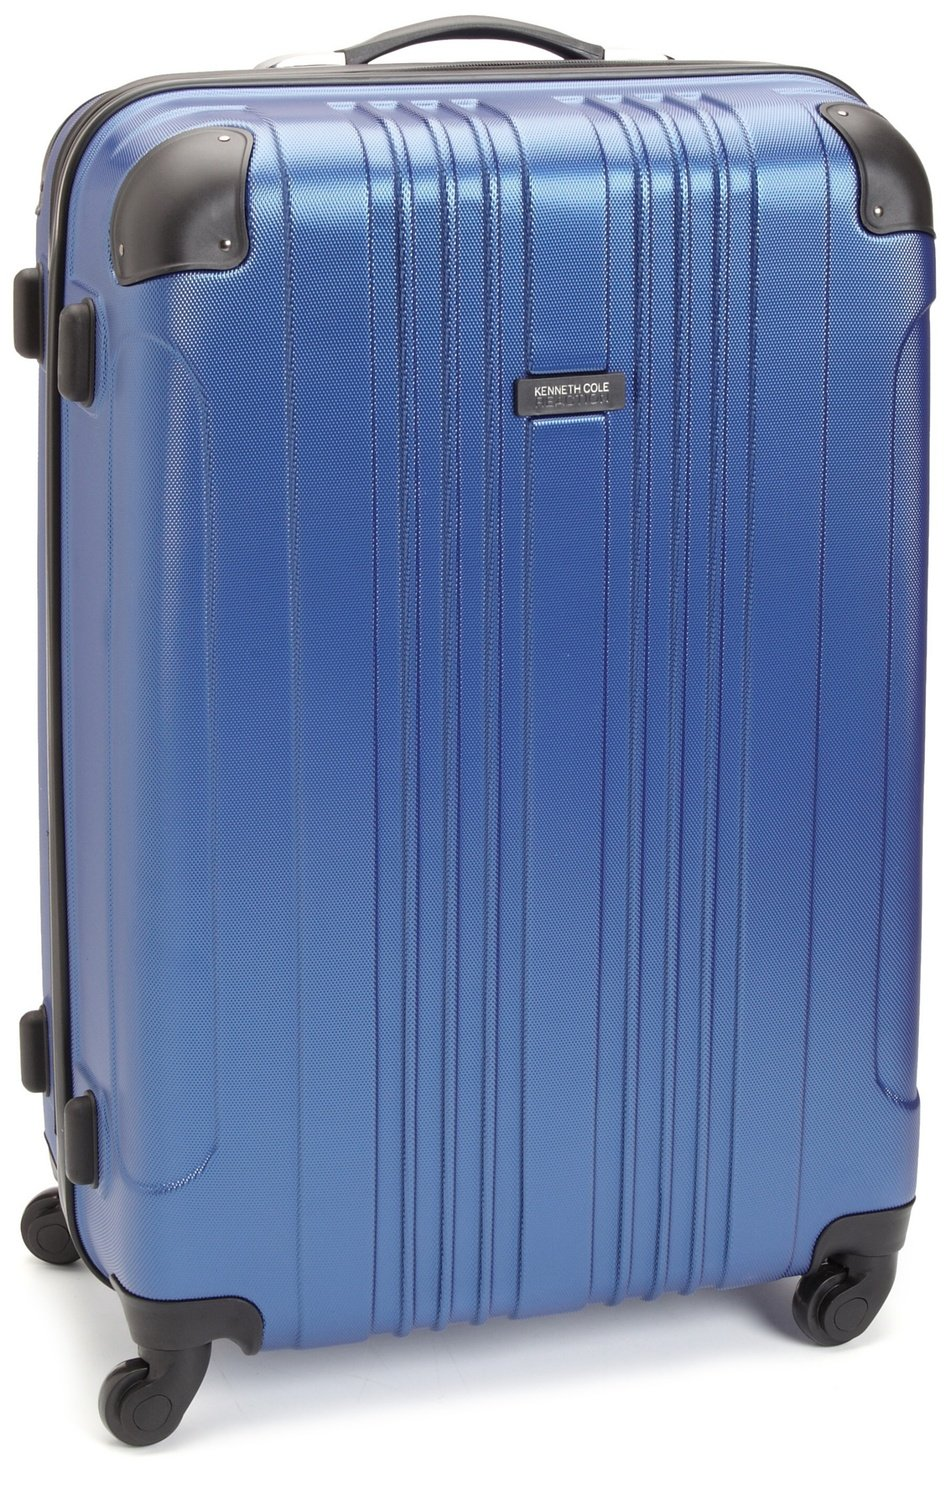 Kenneth Cole Reaction 28' Let It All Out Luggage, Suitcase in Cobalt by Kenneth Cole REACTION